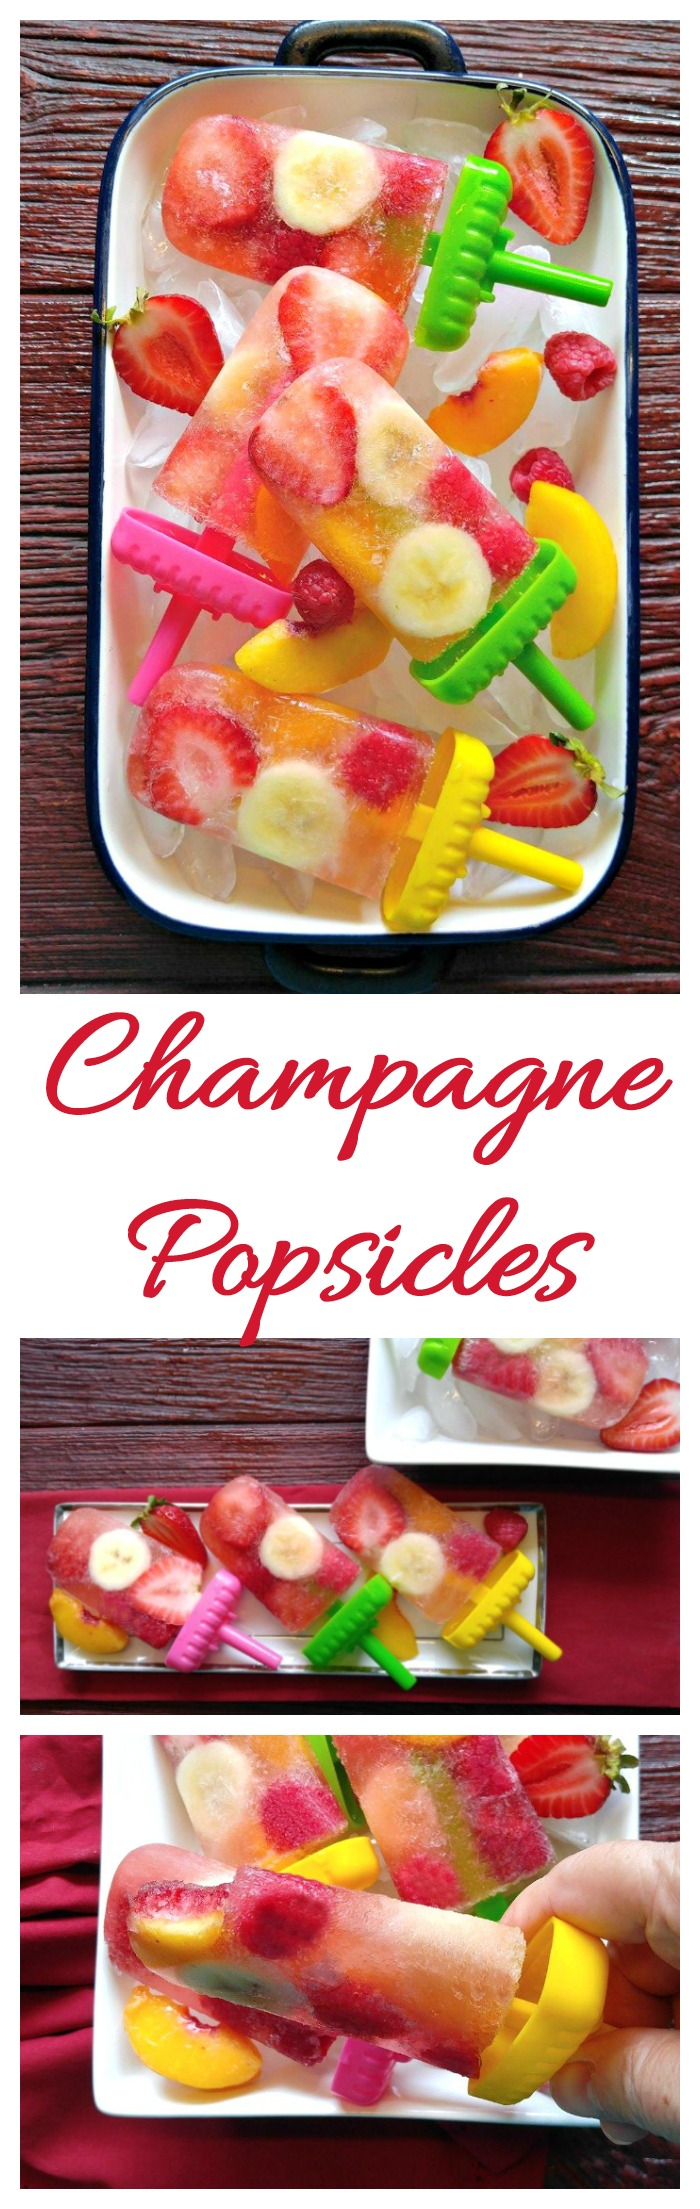 Champagne Popsicles - Adult Frozen Dessert that Beats the Heat